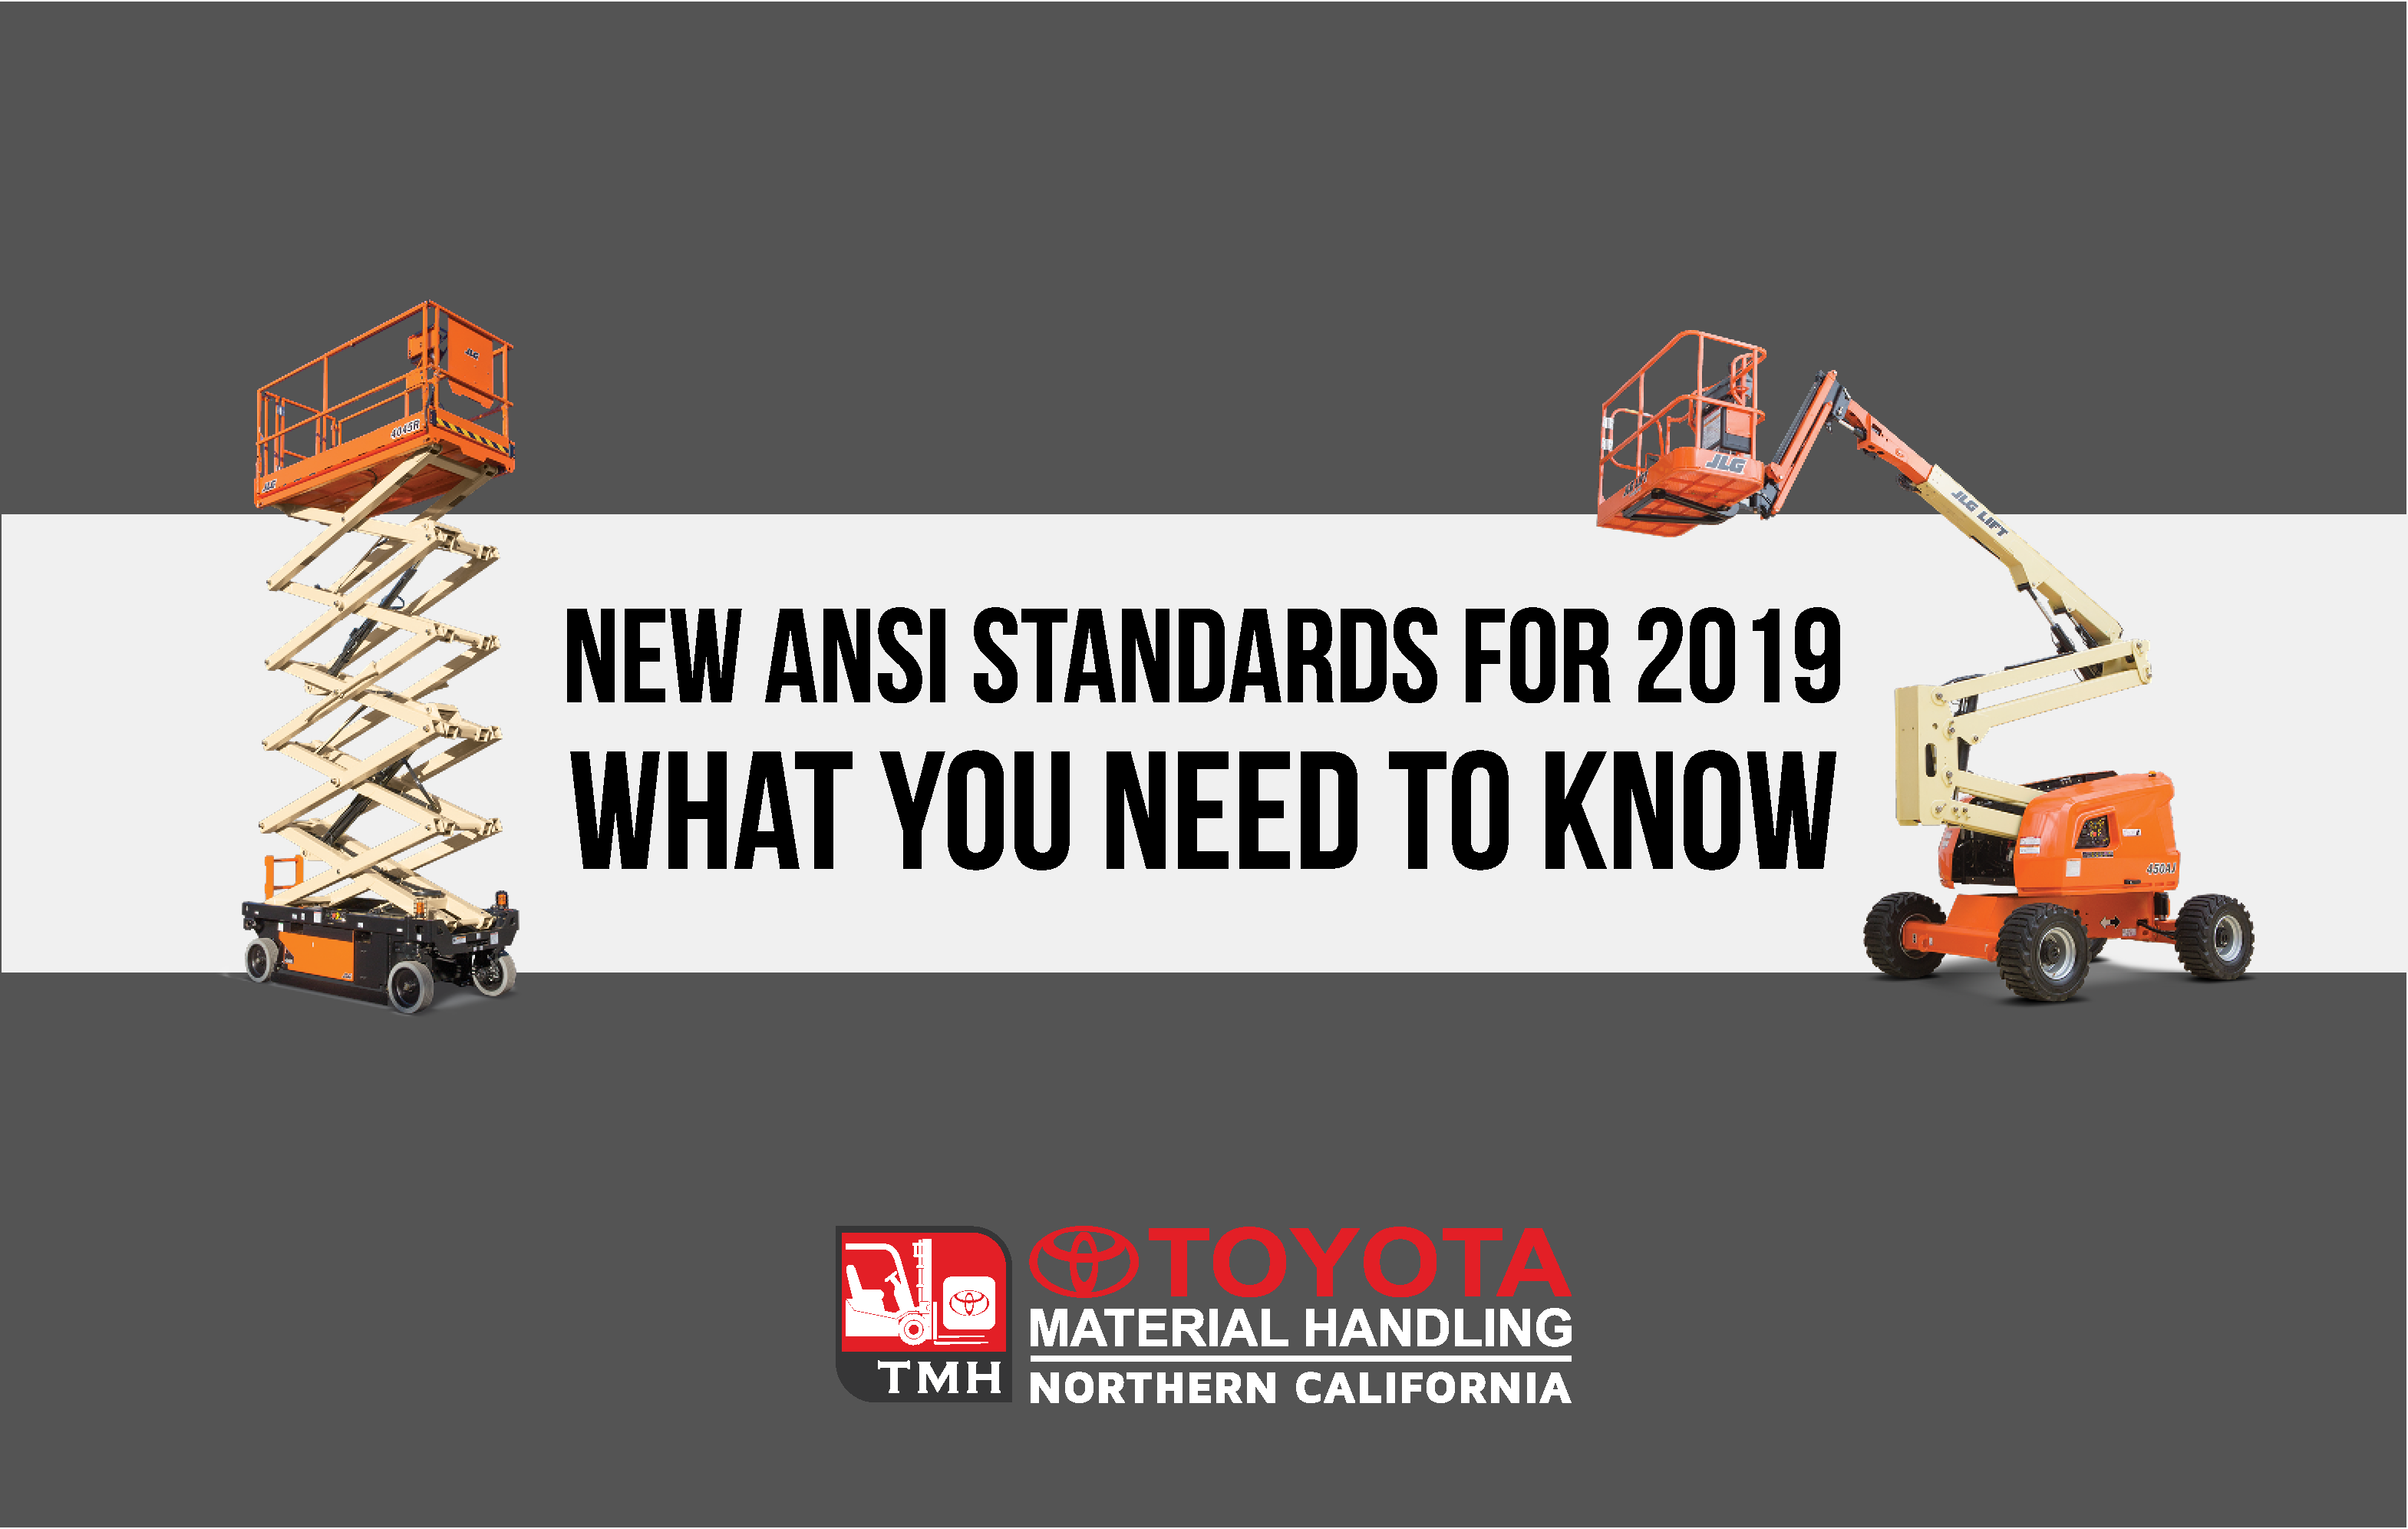 new ansi standards for 2019 MEWPS aerial lifts